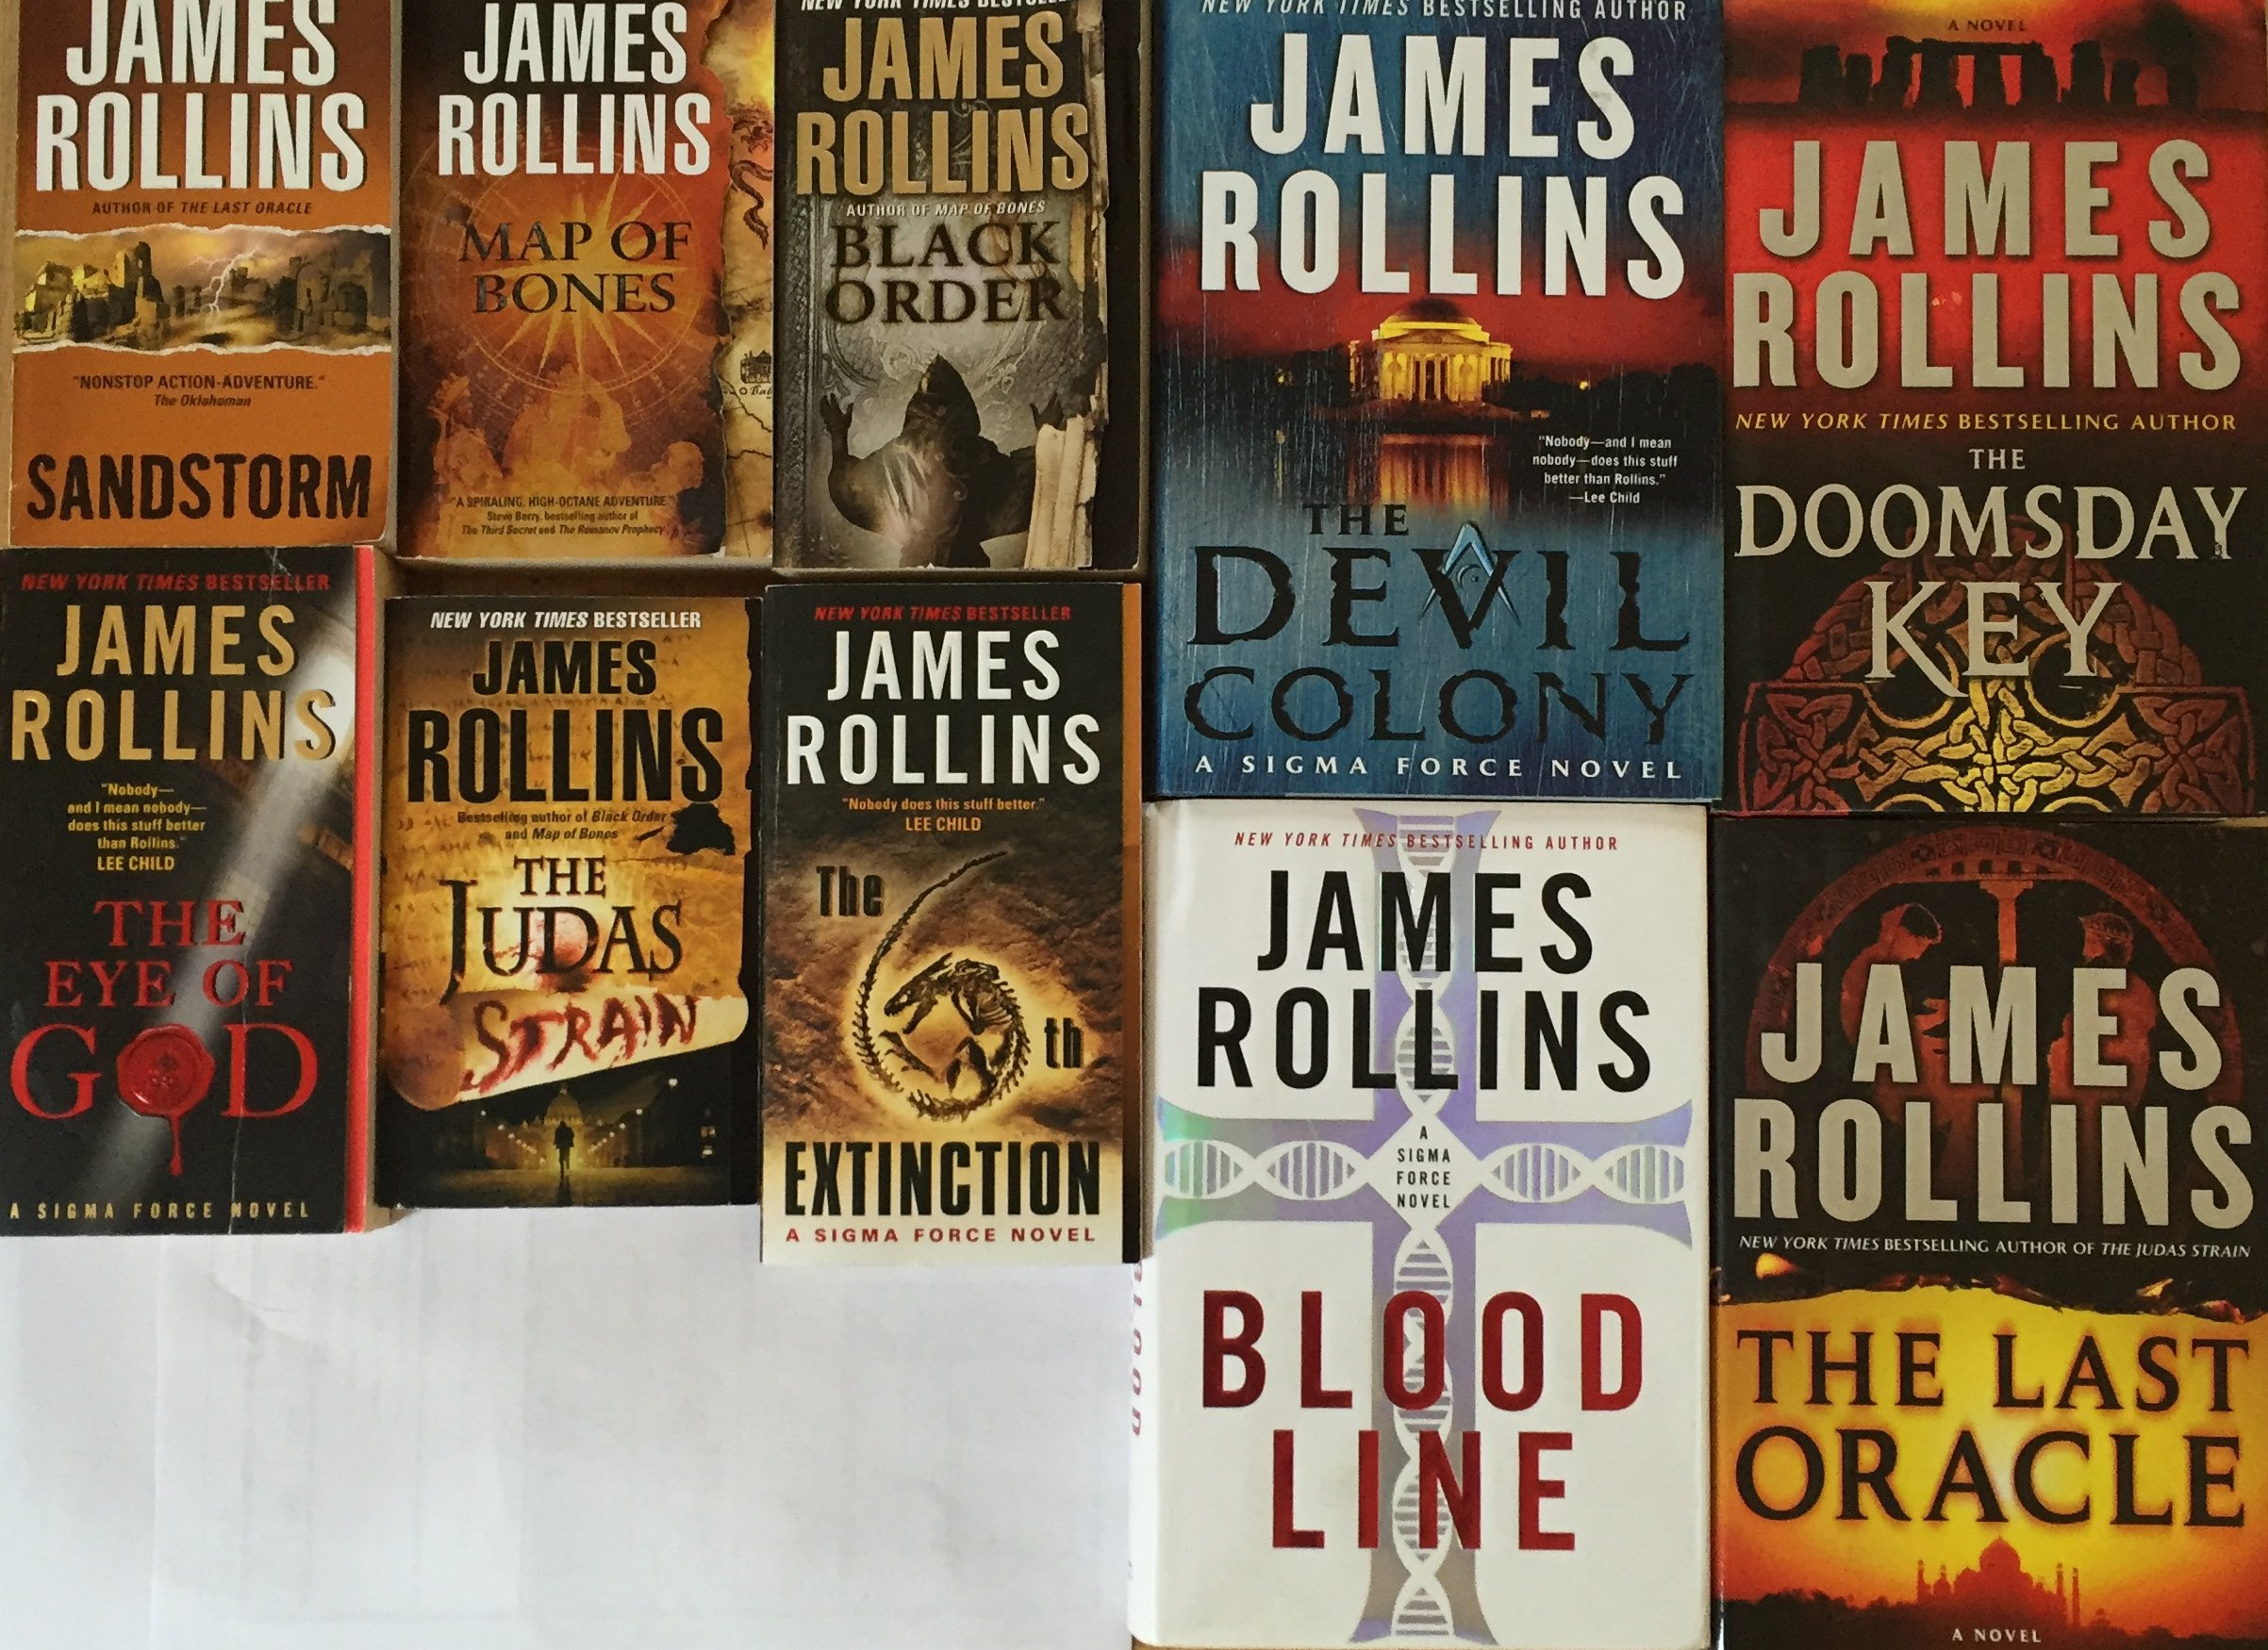 What is the last book about James Bond and who is its author